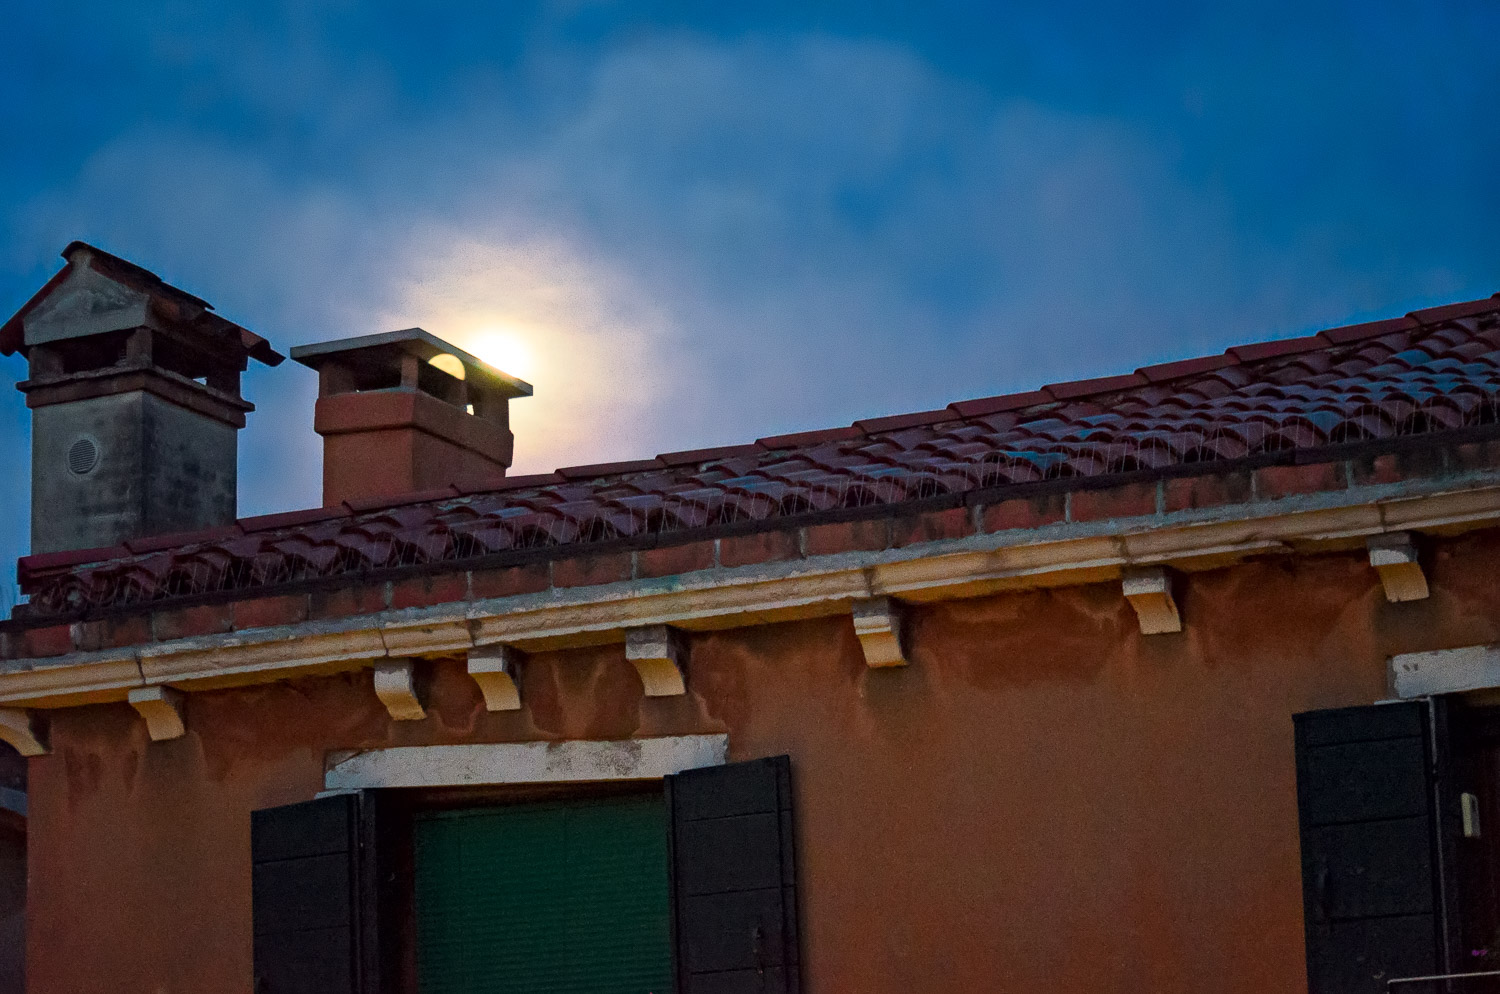 Venice Roof and Chimneys